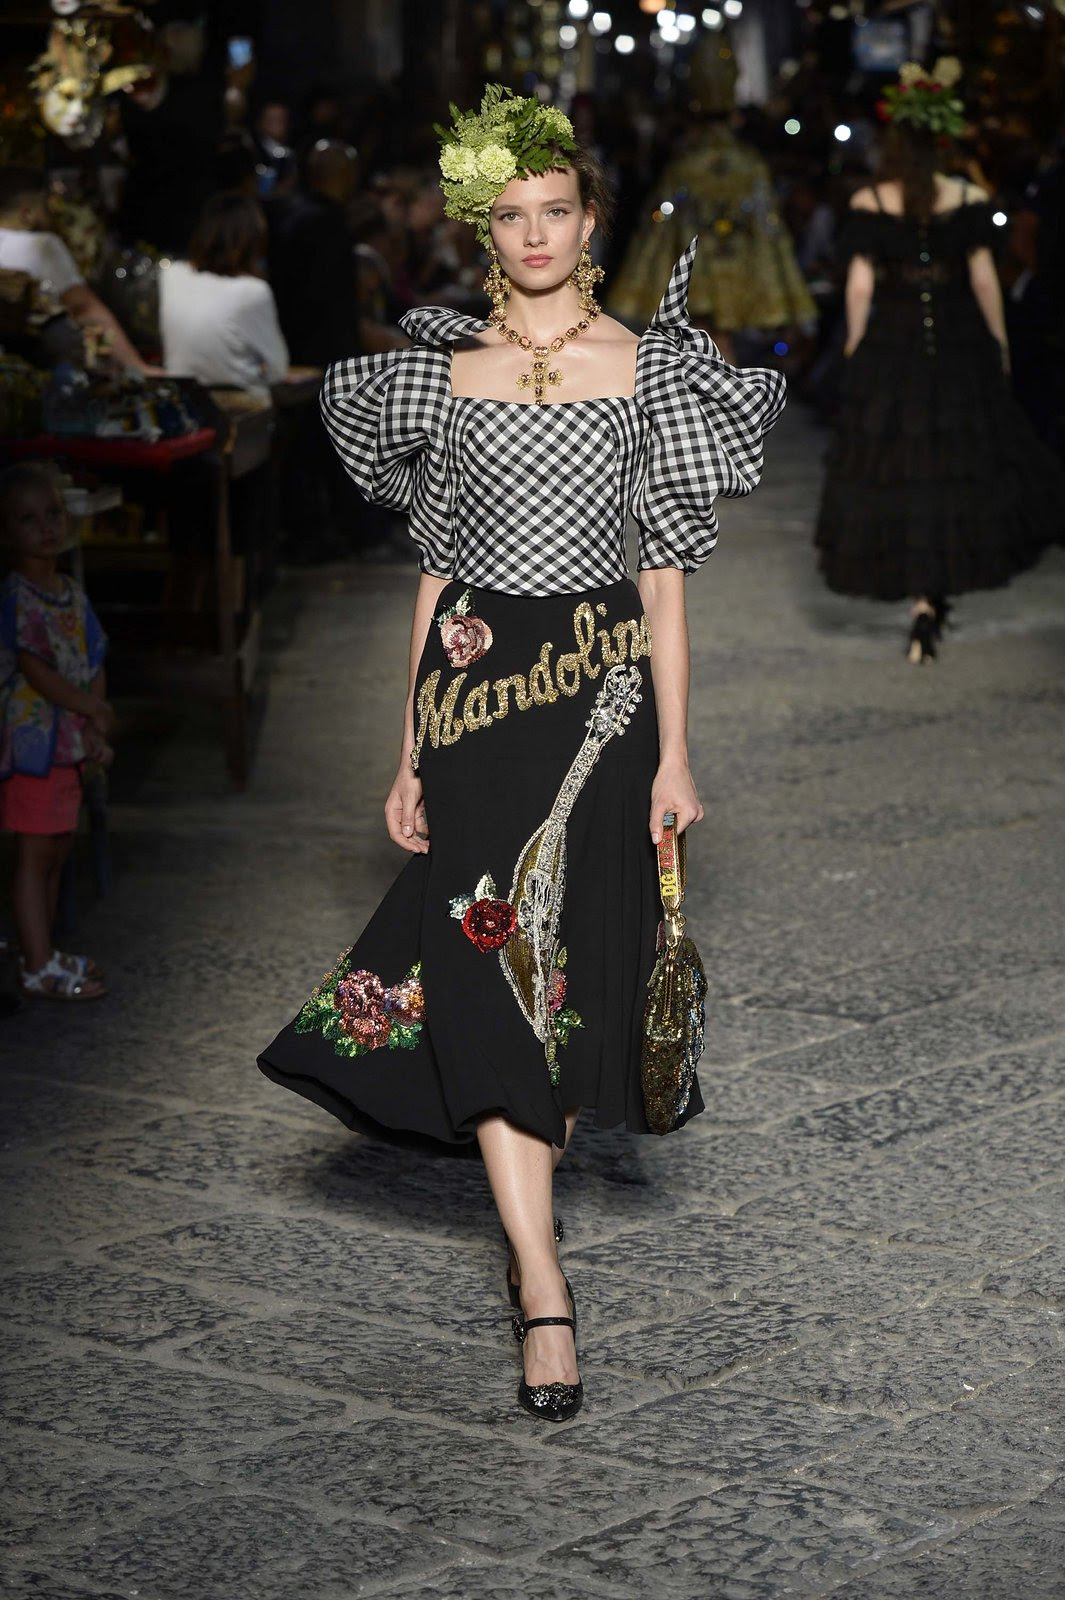 http://media.vogue.com/r/h_1600,w_1240/2016/07/09/13-dolce-and-gabbana-alta-moda-2016.jpg